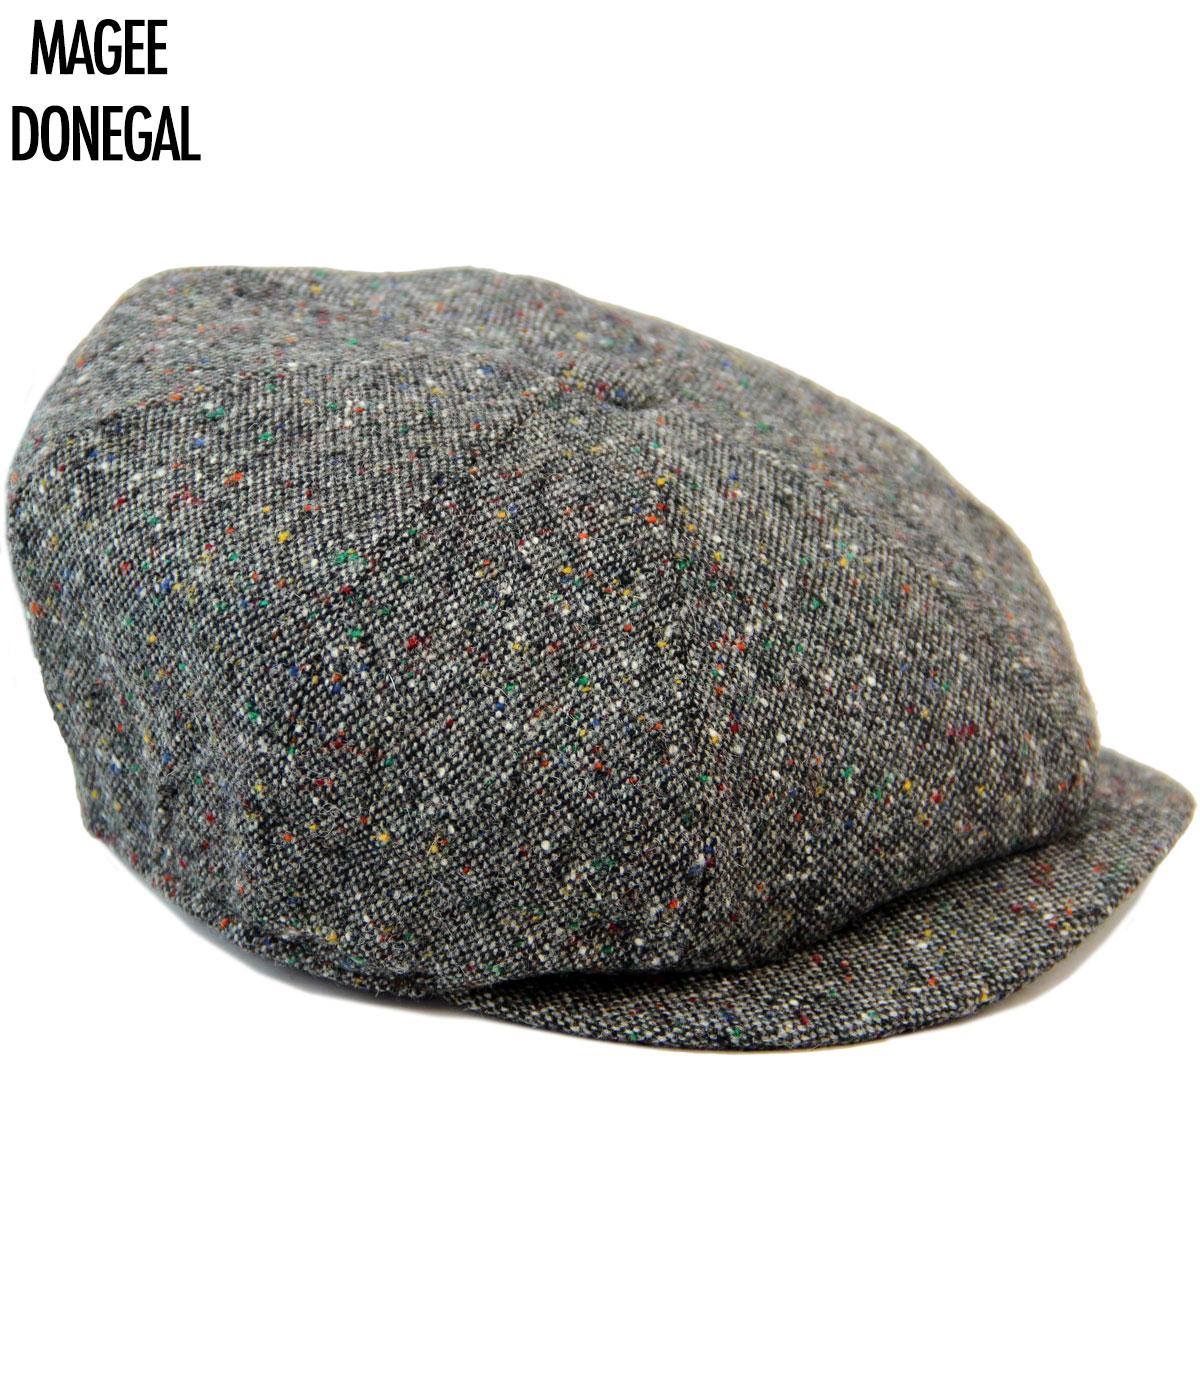 Alfie Donegal FAILSWORTH Magee Retro Mod Wool Gatsby Cap in Grey 7790d21e1128